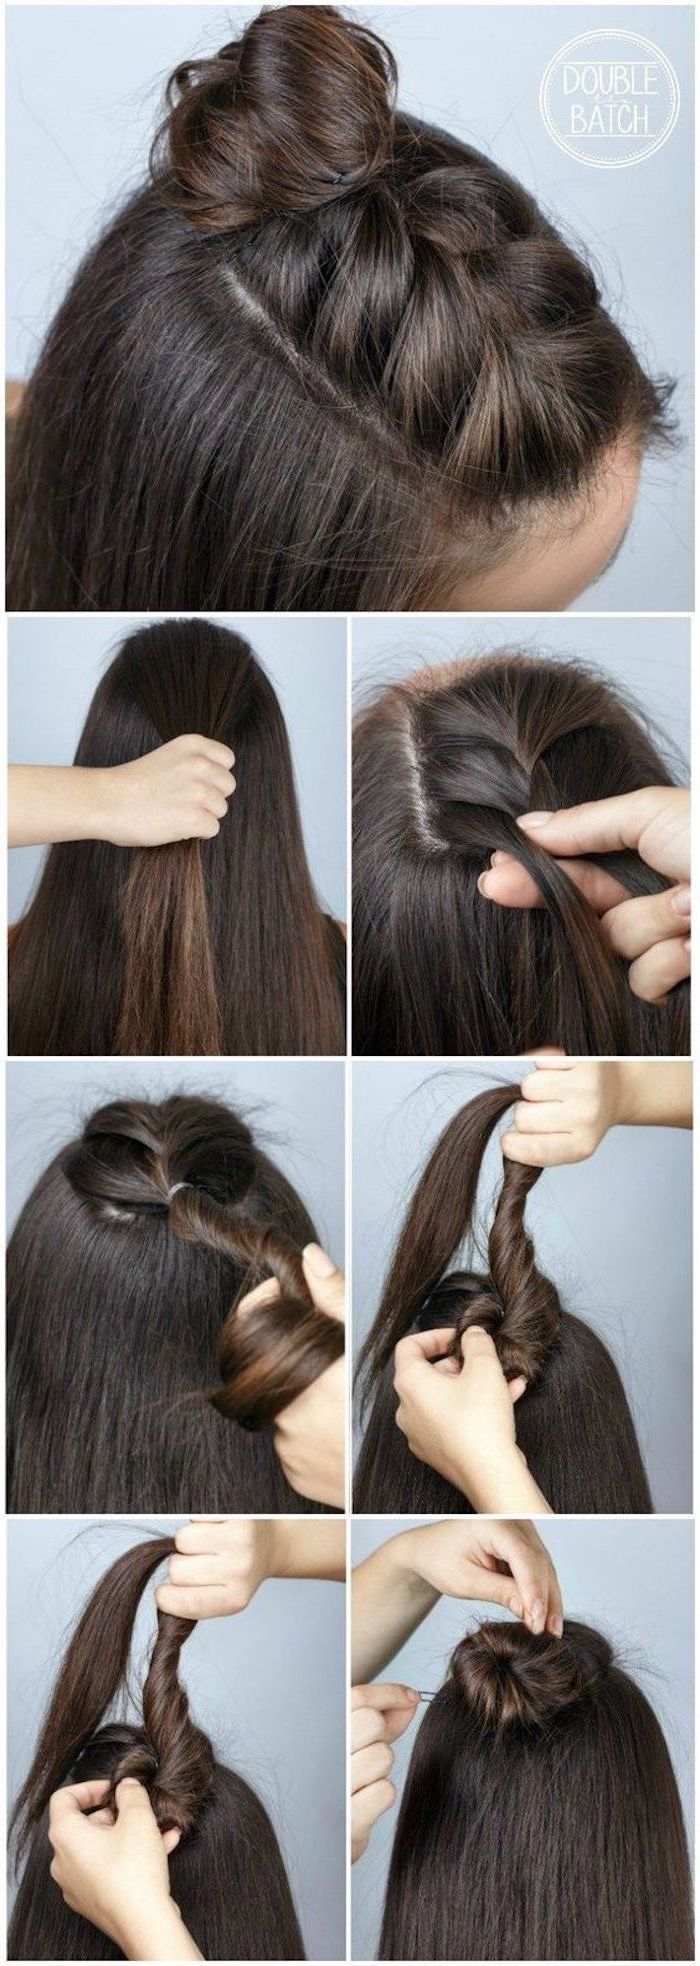 brunette hair with braid on top ending in bun hairstyles for teenage girls step by step diy tutorial